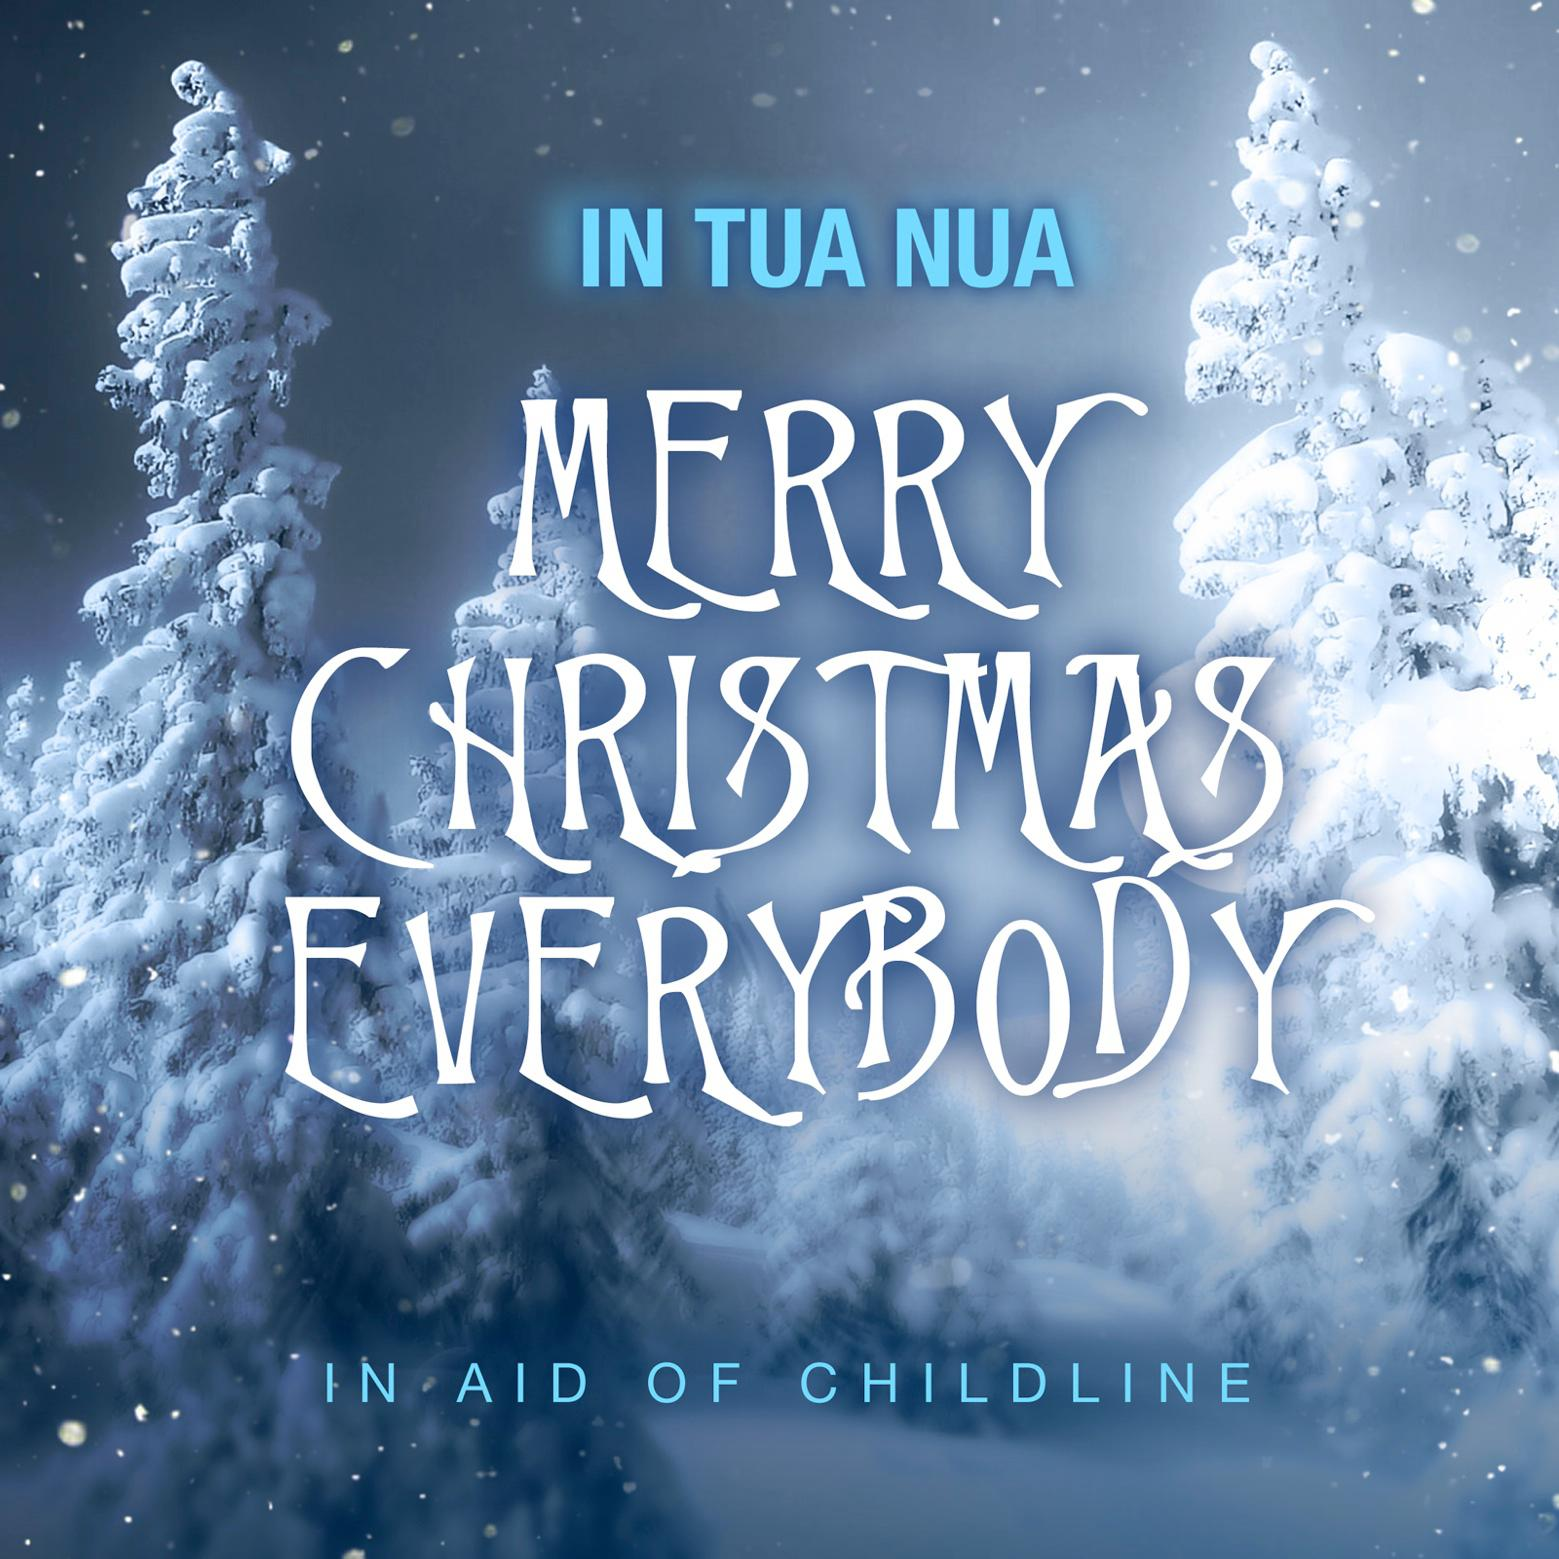 Merry Christmas Everybody From In Tua Nua